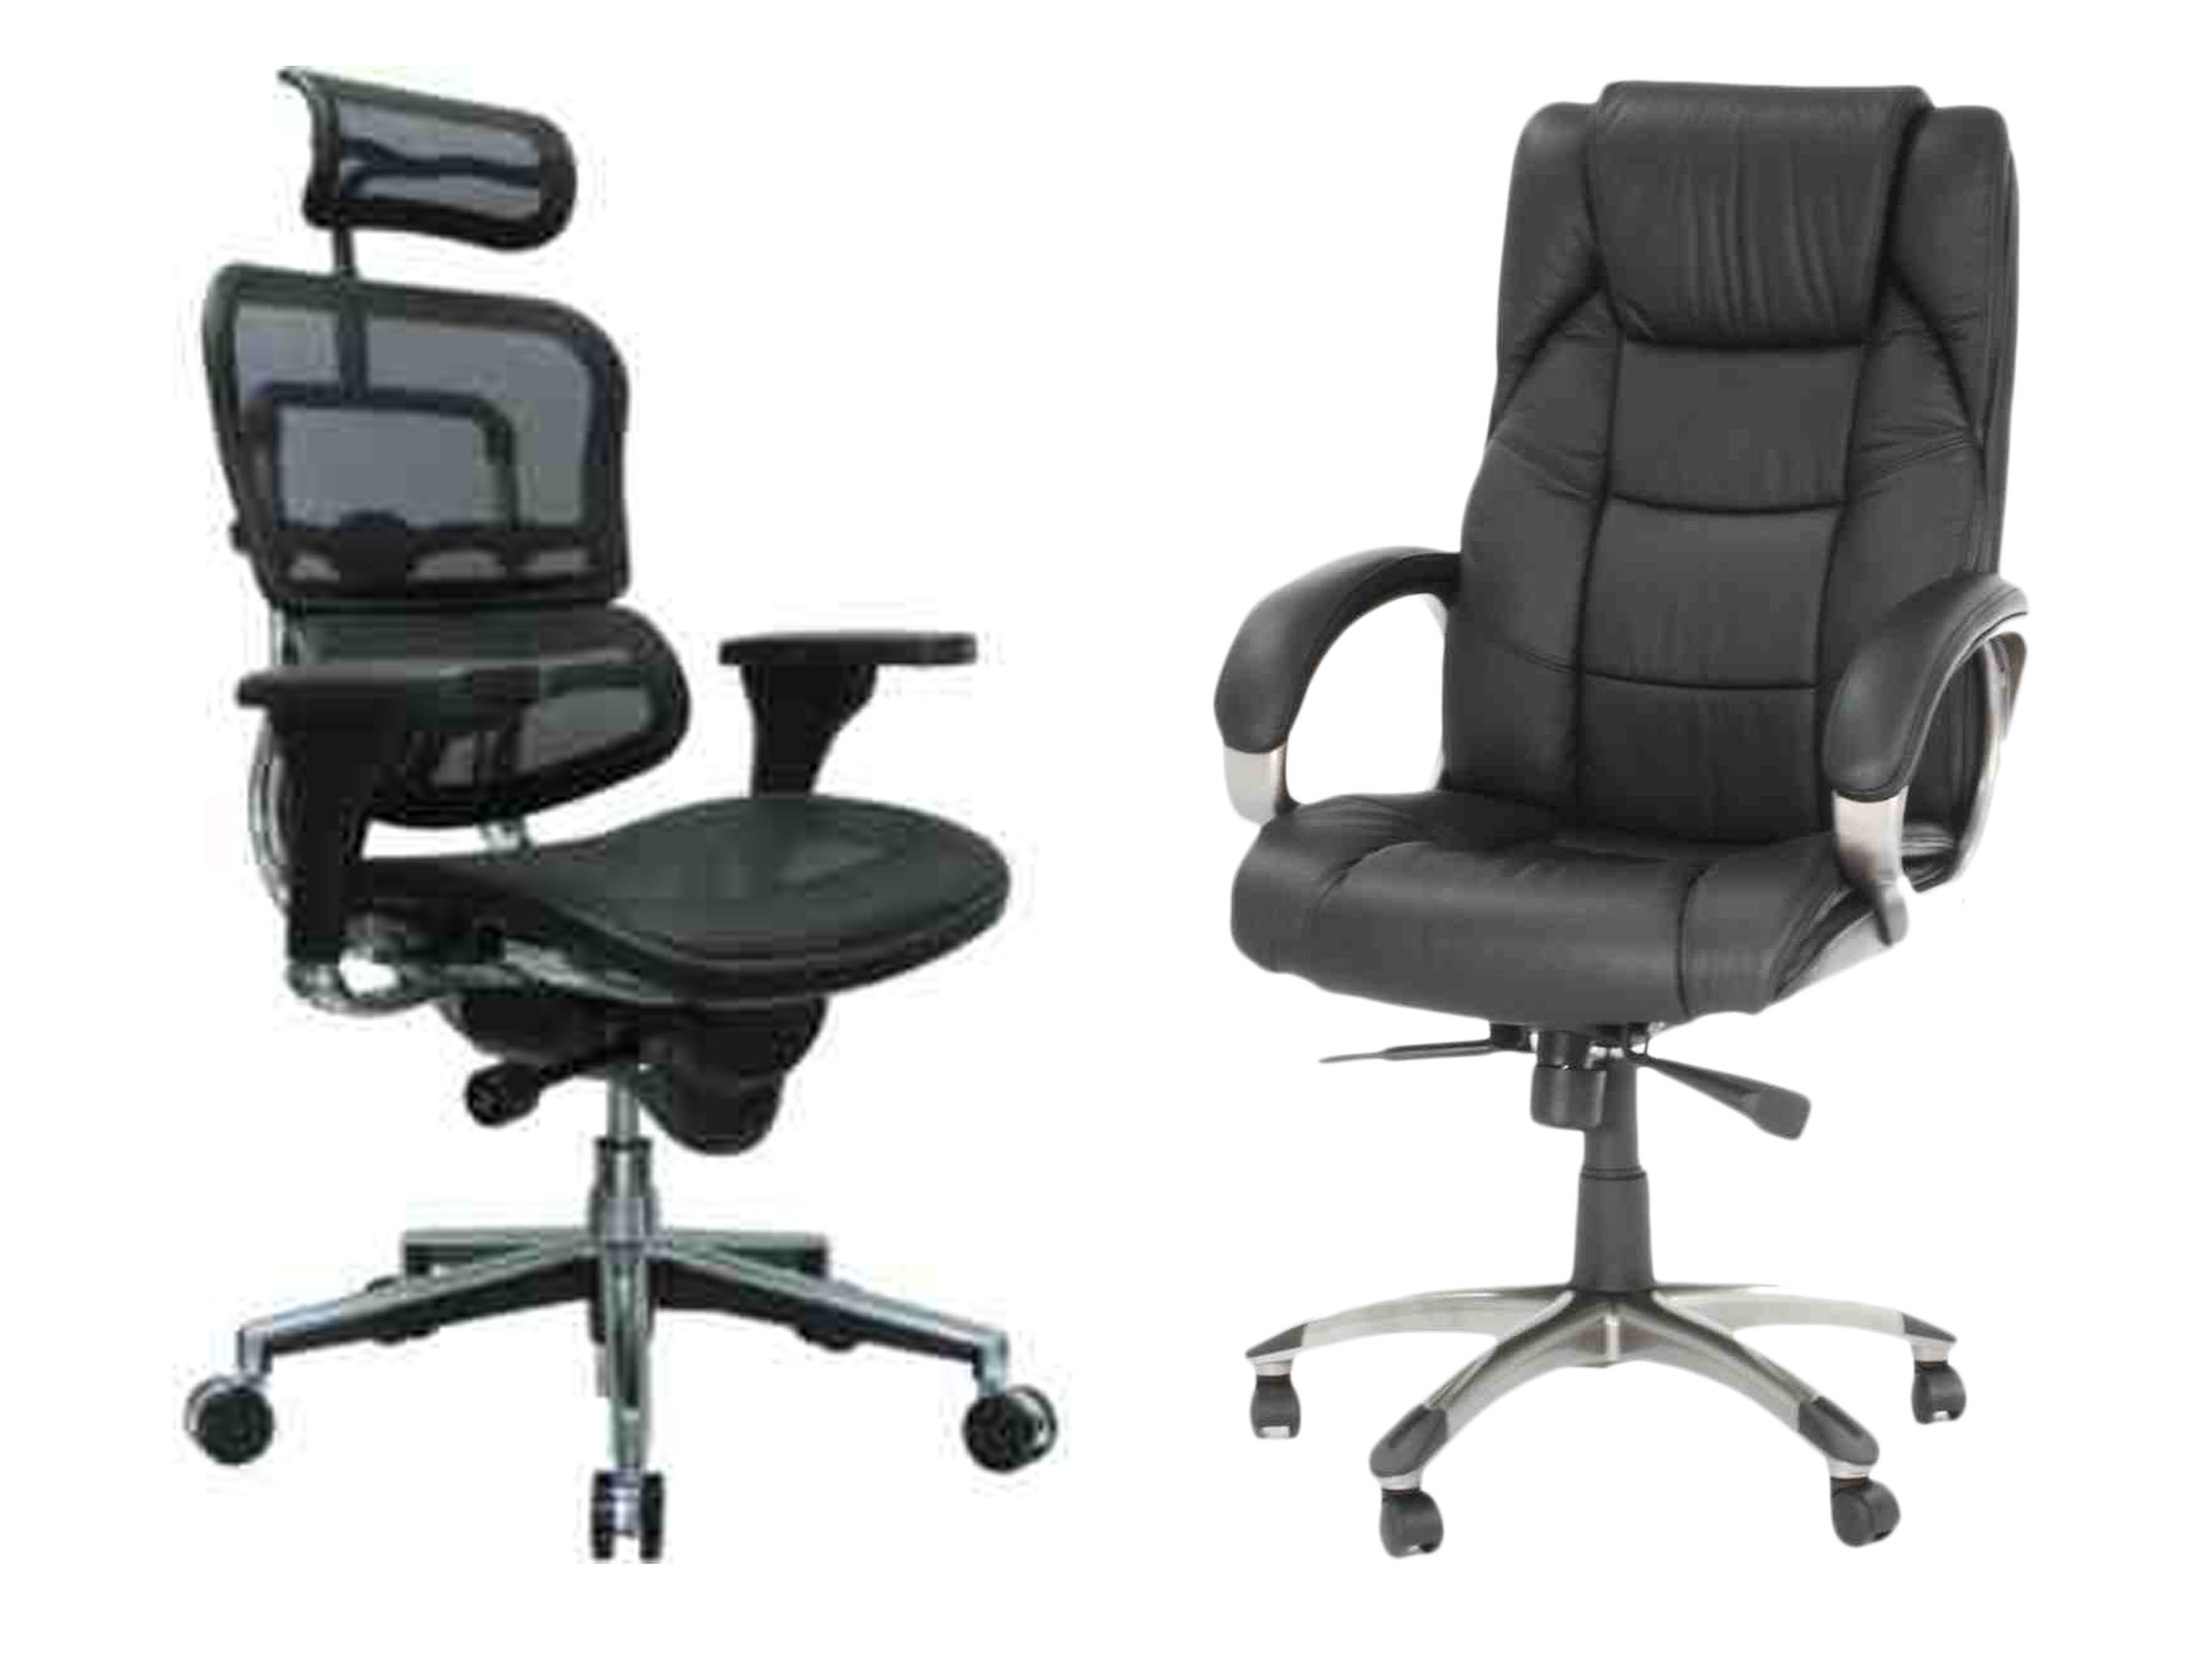 Comparisons of Mesh vs Leather Chairs  sc 1 st  Comfy Office Chair & Mesh vs Leather Chair | Which One is Right For You | Comfy Office ...